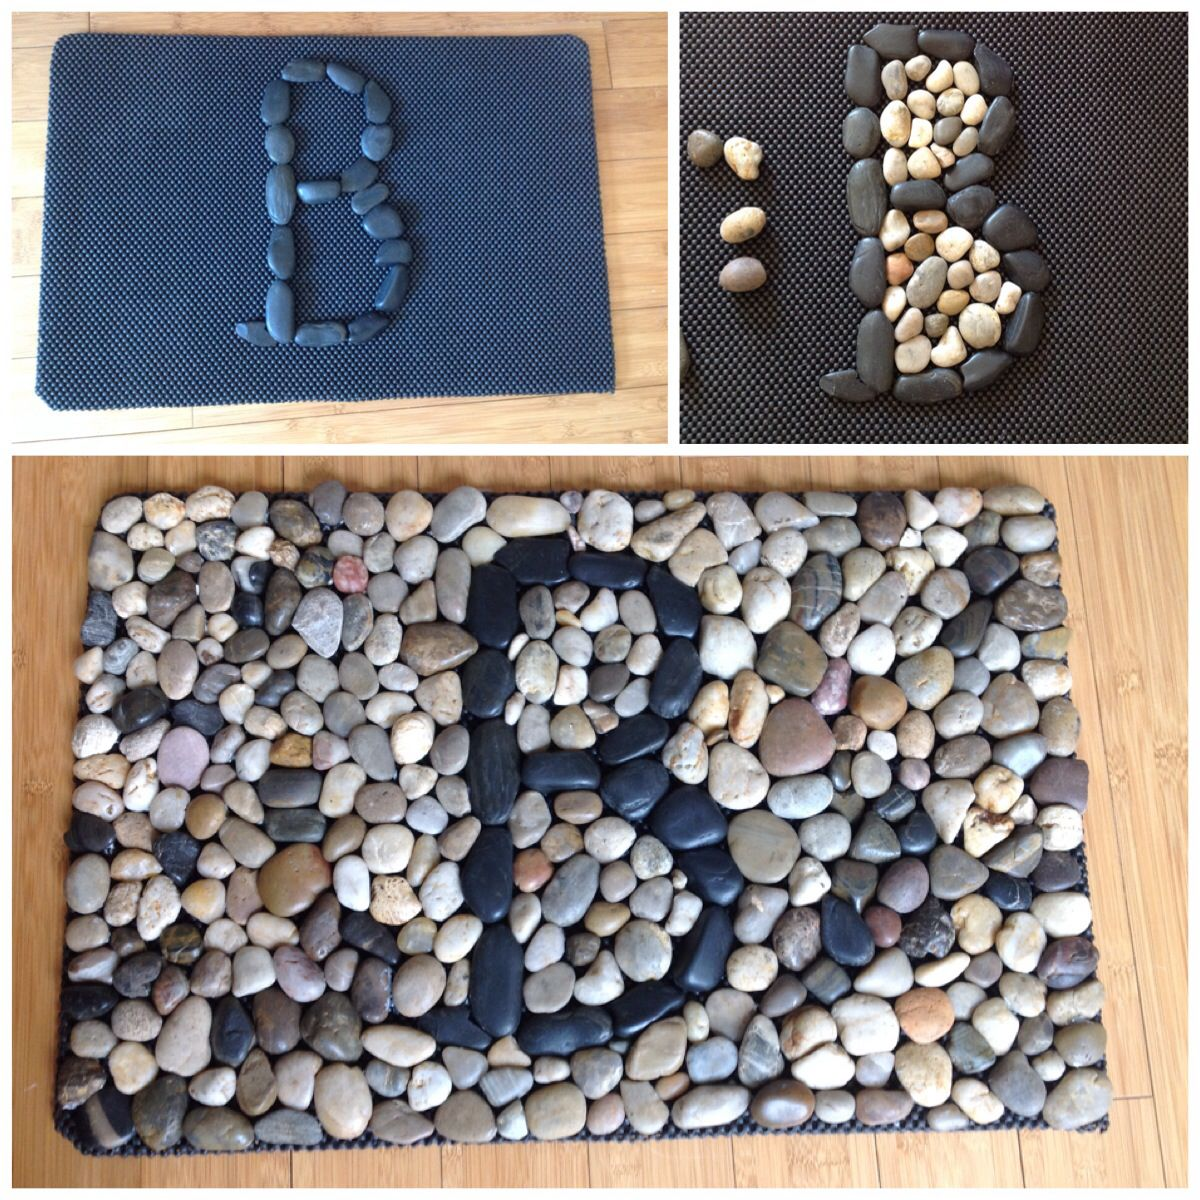 Pin By Beth Thomas On Projects To Try Diy River Rock River Rock Crafts River Rock Decor